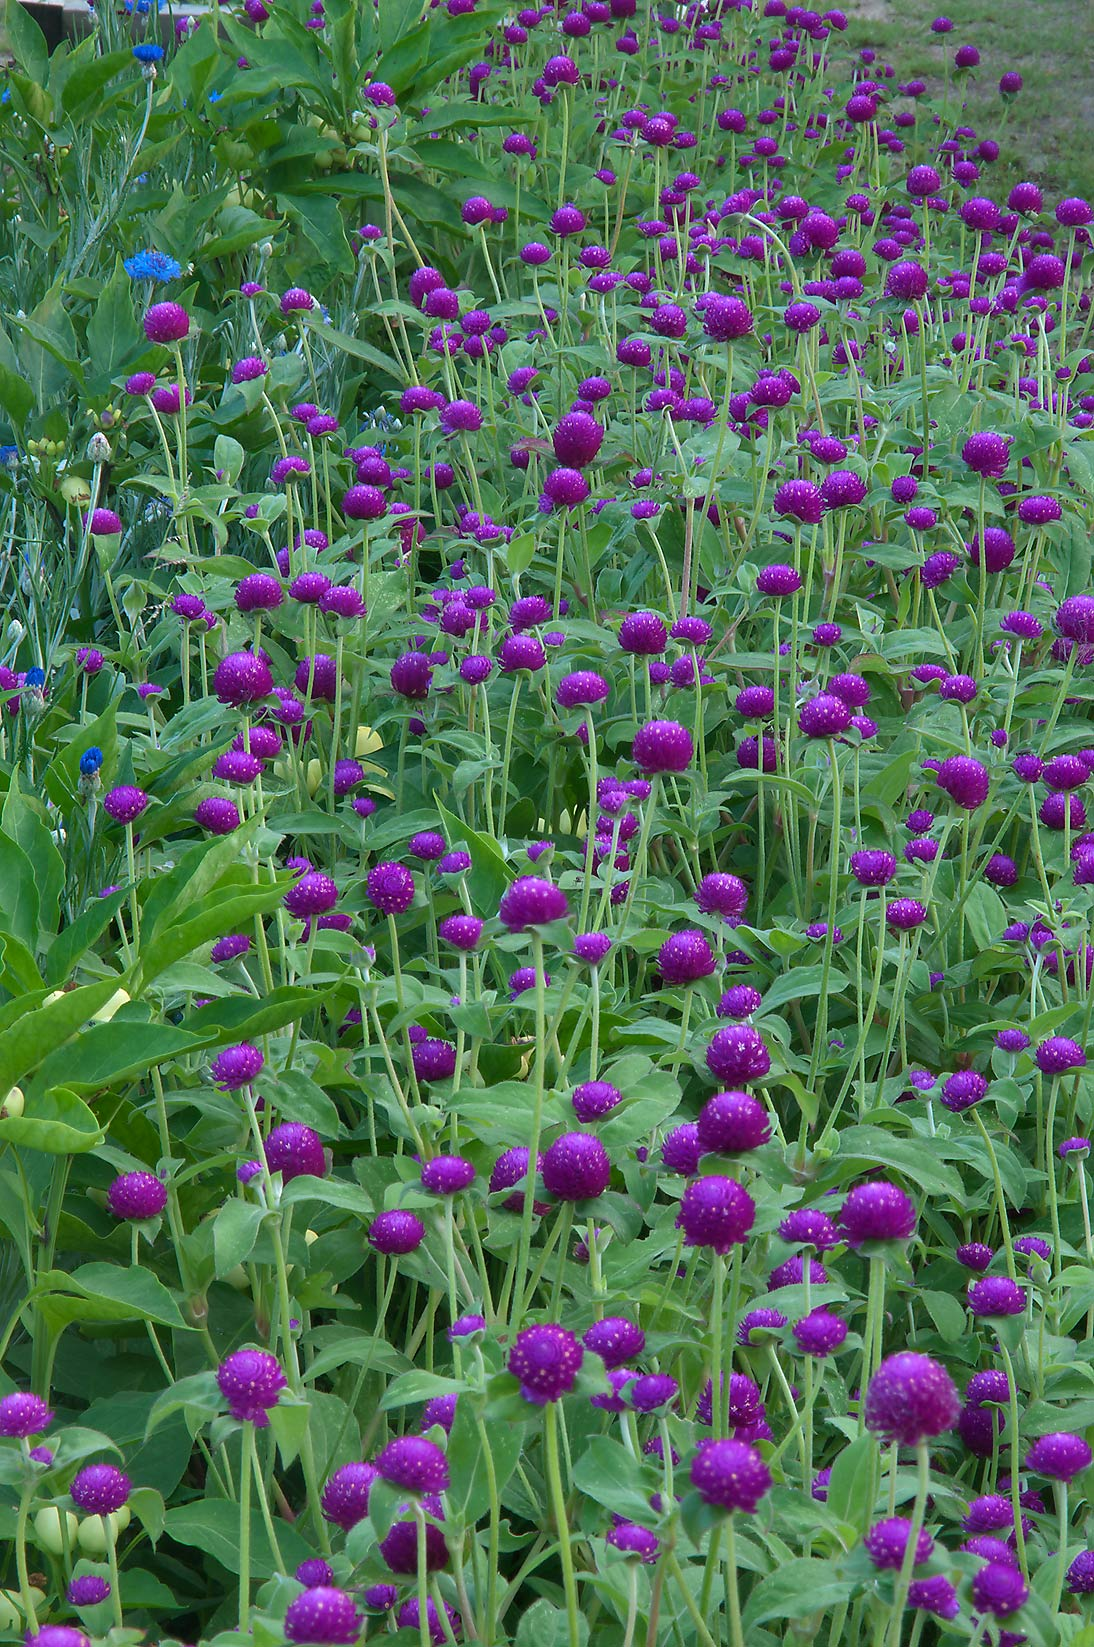 Globe amaranth (Gomphrena globosa) in TAMU...M University. College Station, Texas